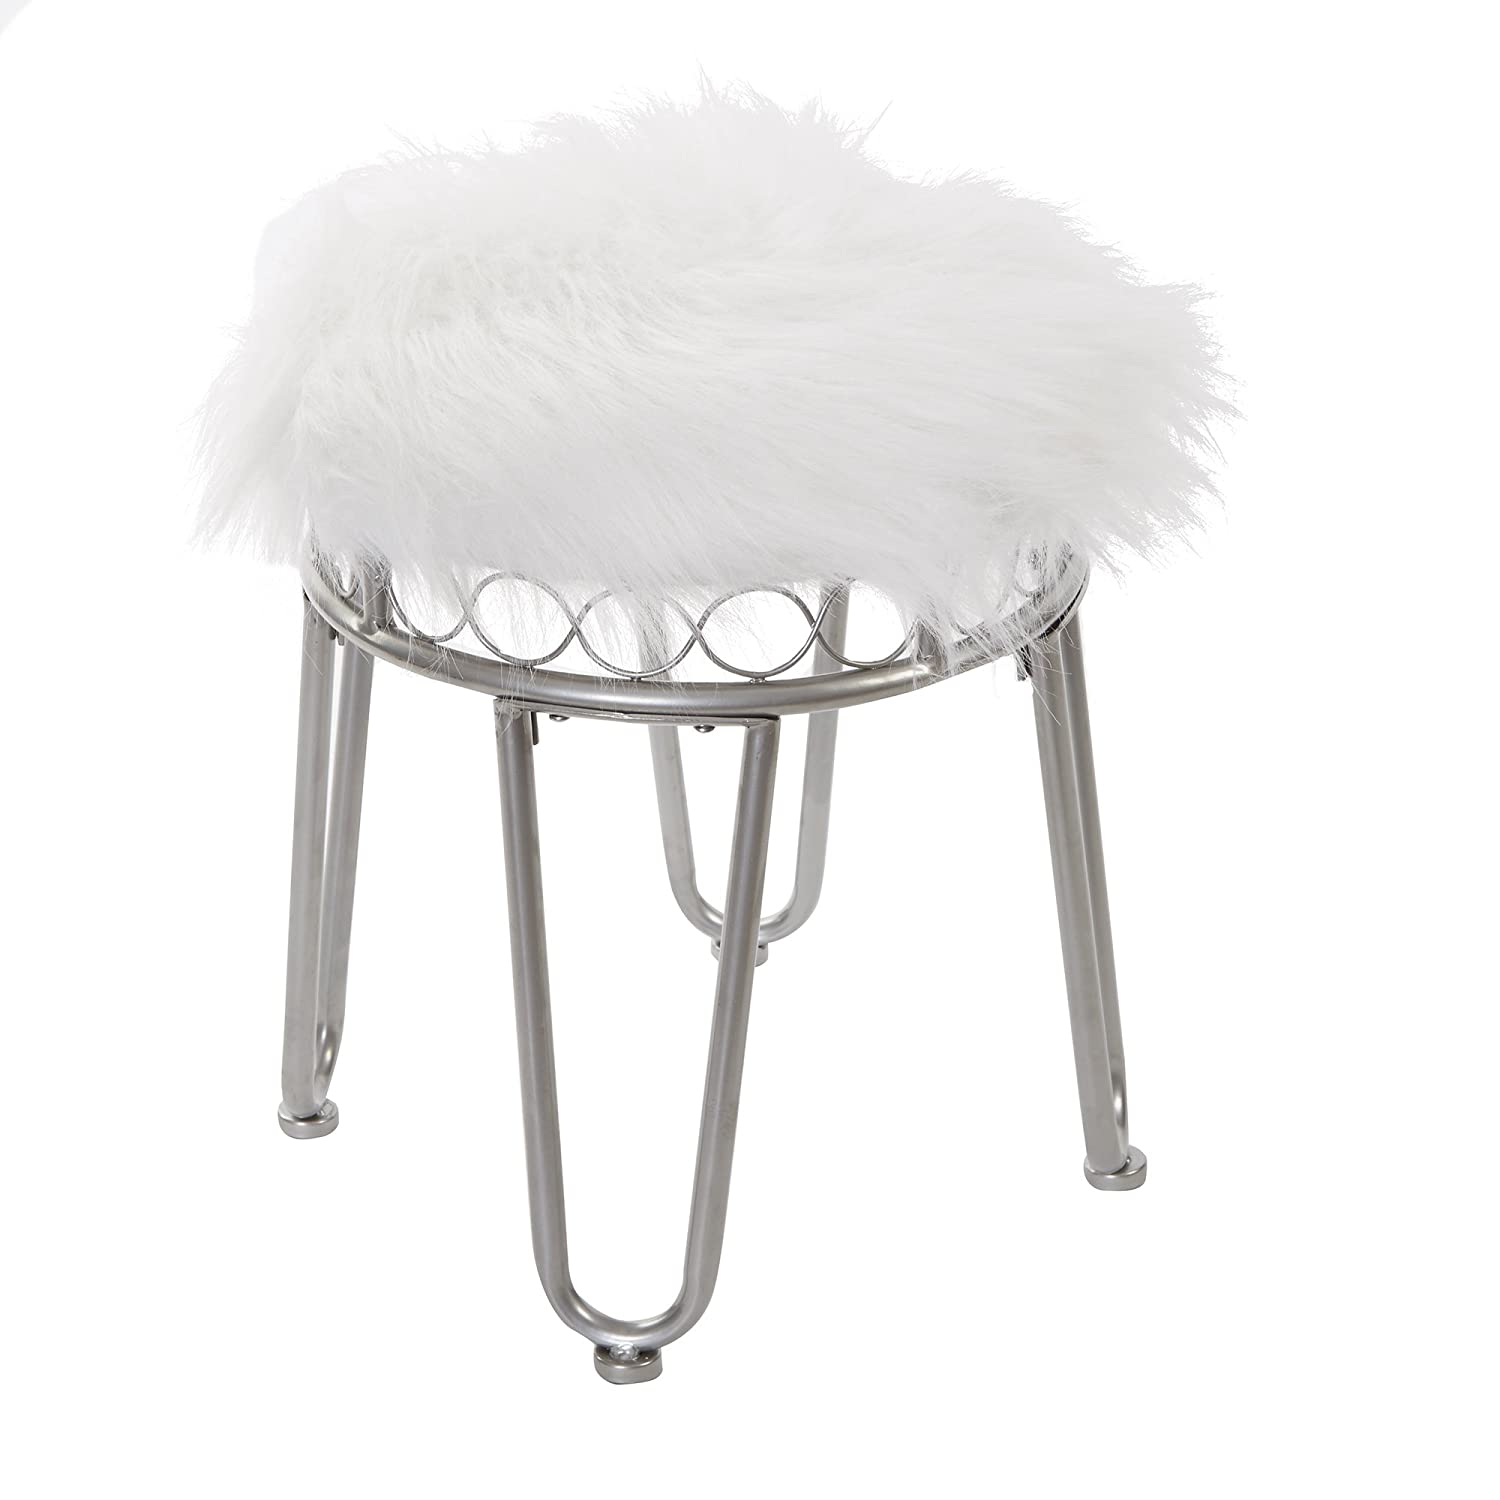 Silverwood Hannah Vanity Stool with Hairpin Legs Cheyenne Products FV1108-BN-FUR